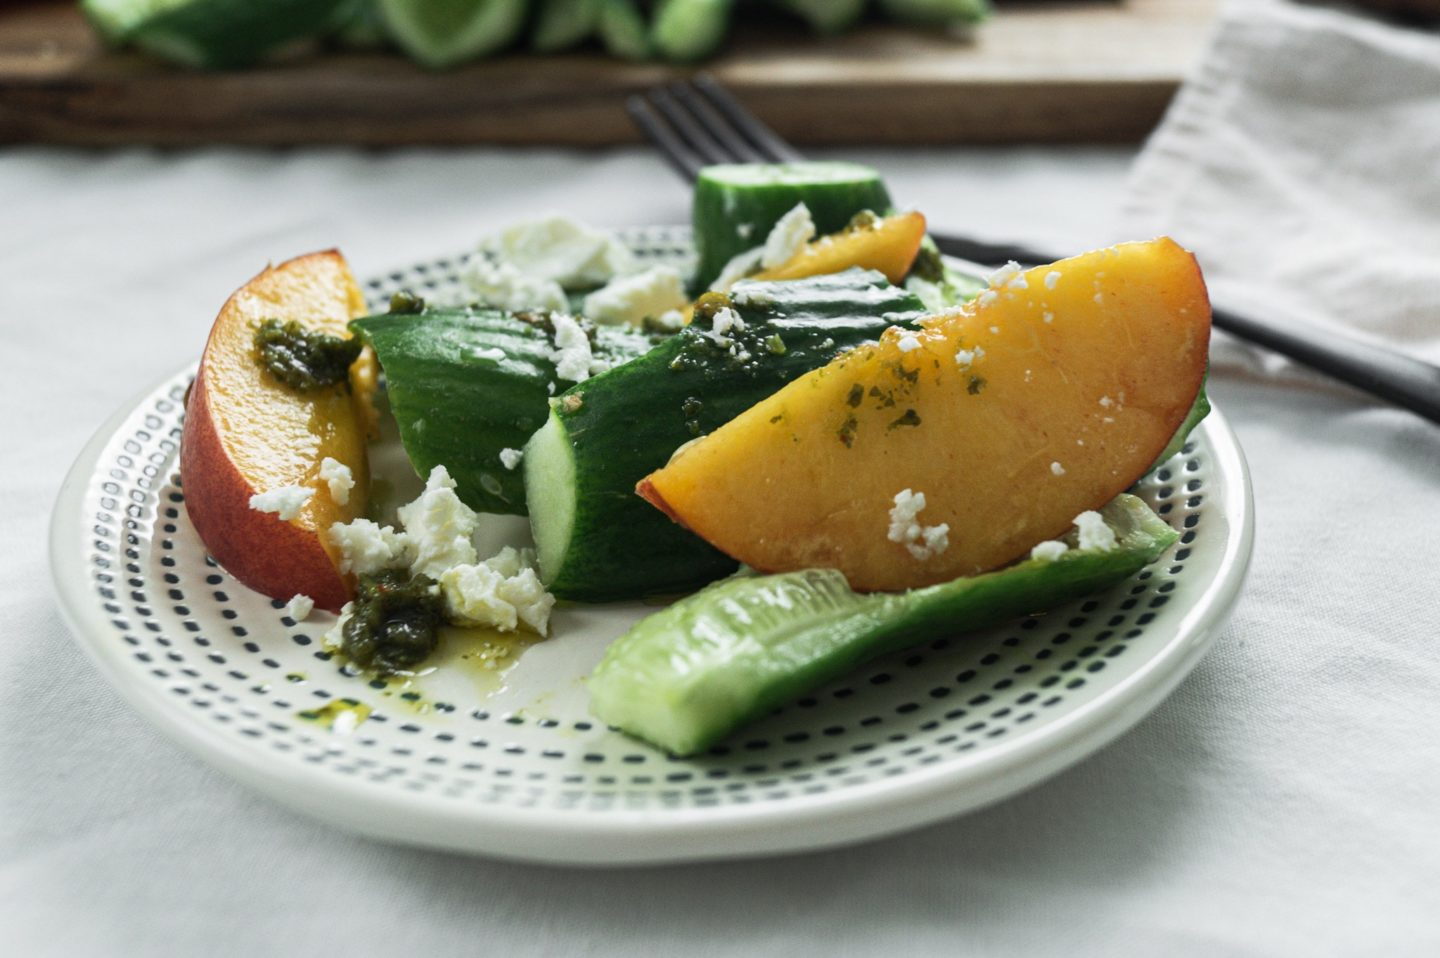 Cucumber peach salad with feta and zhoug dressing.